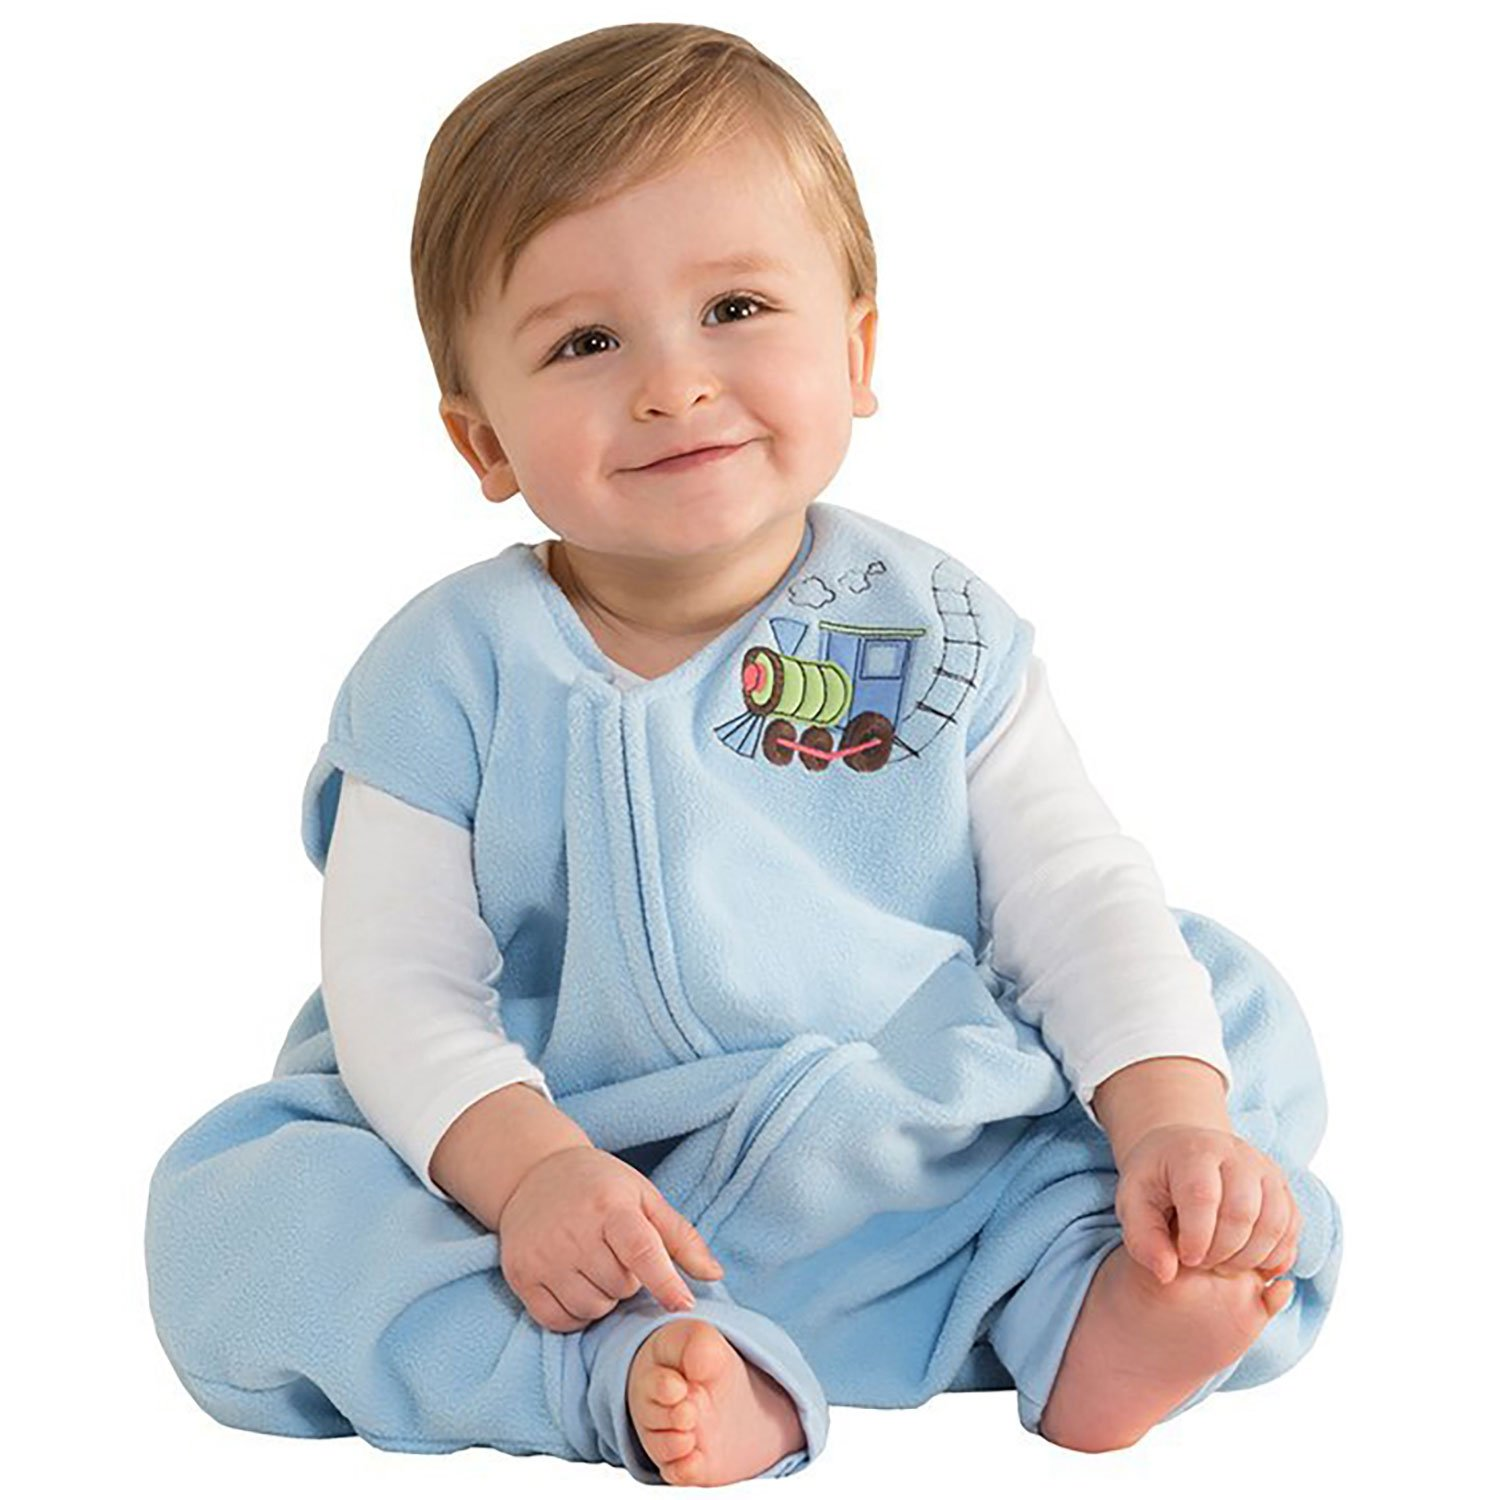 HALO Early Walker SleepSack Micro Fleece Wearable Blanket, Blue, Large by Halo